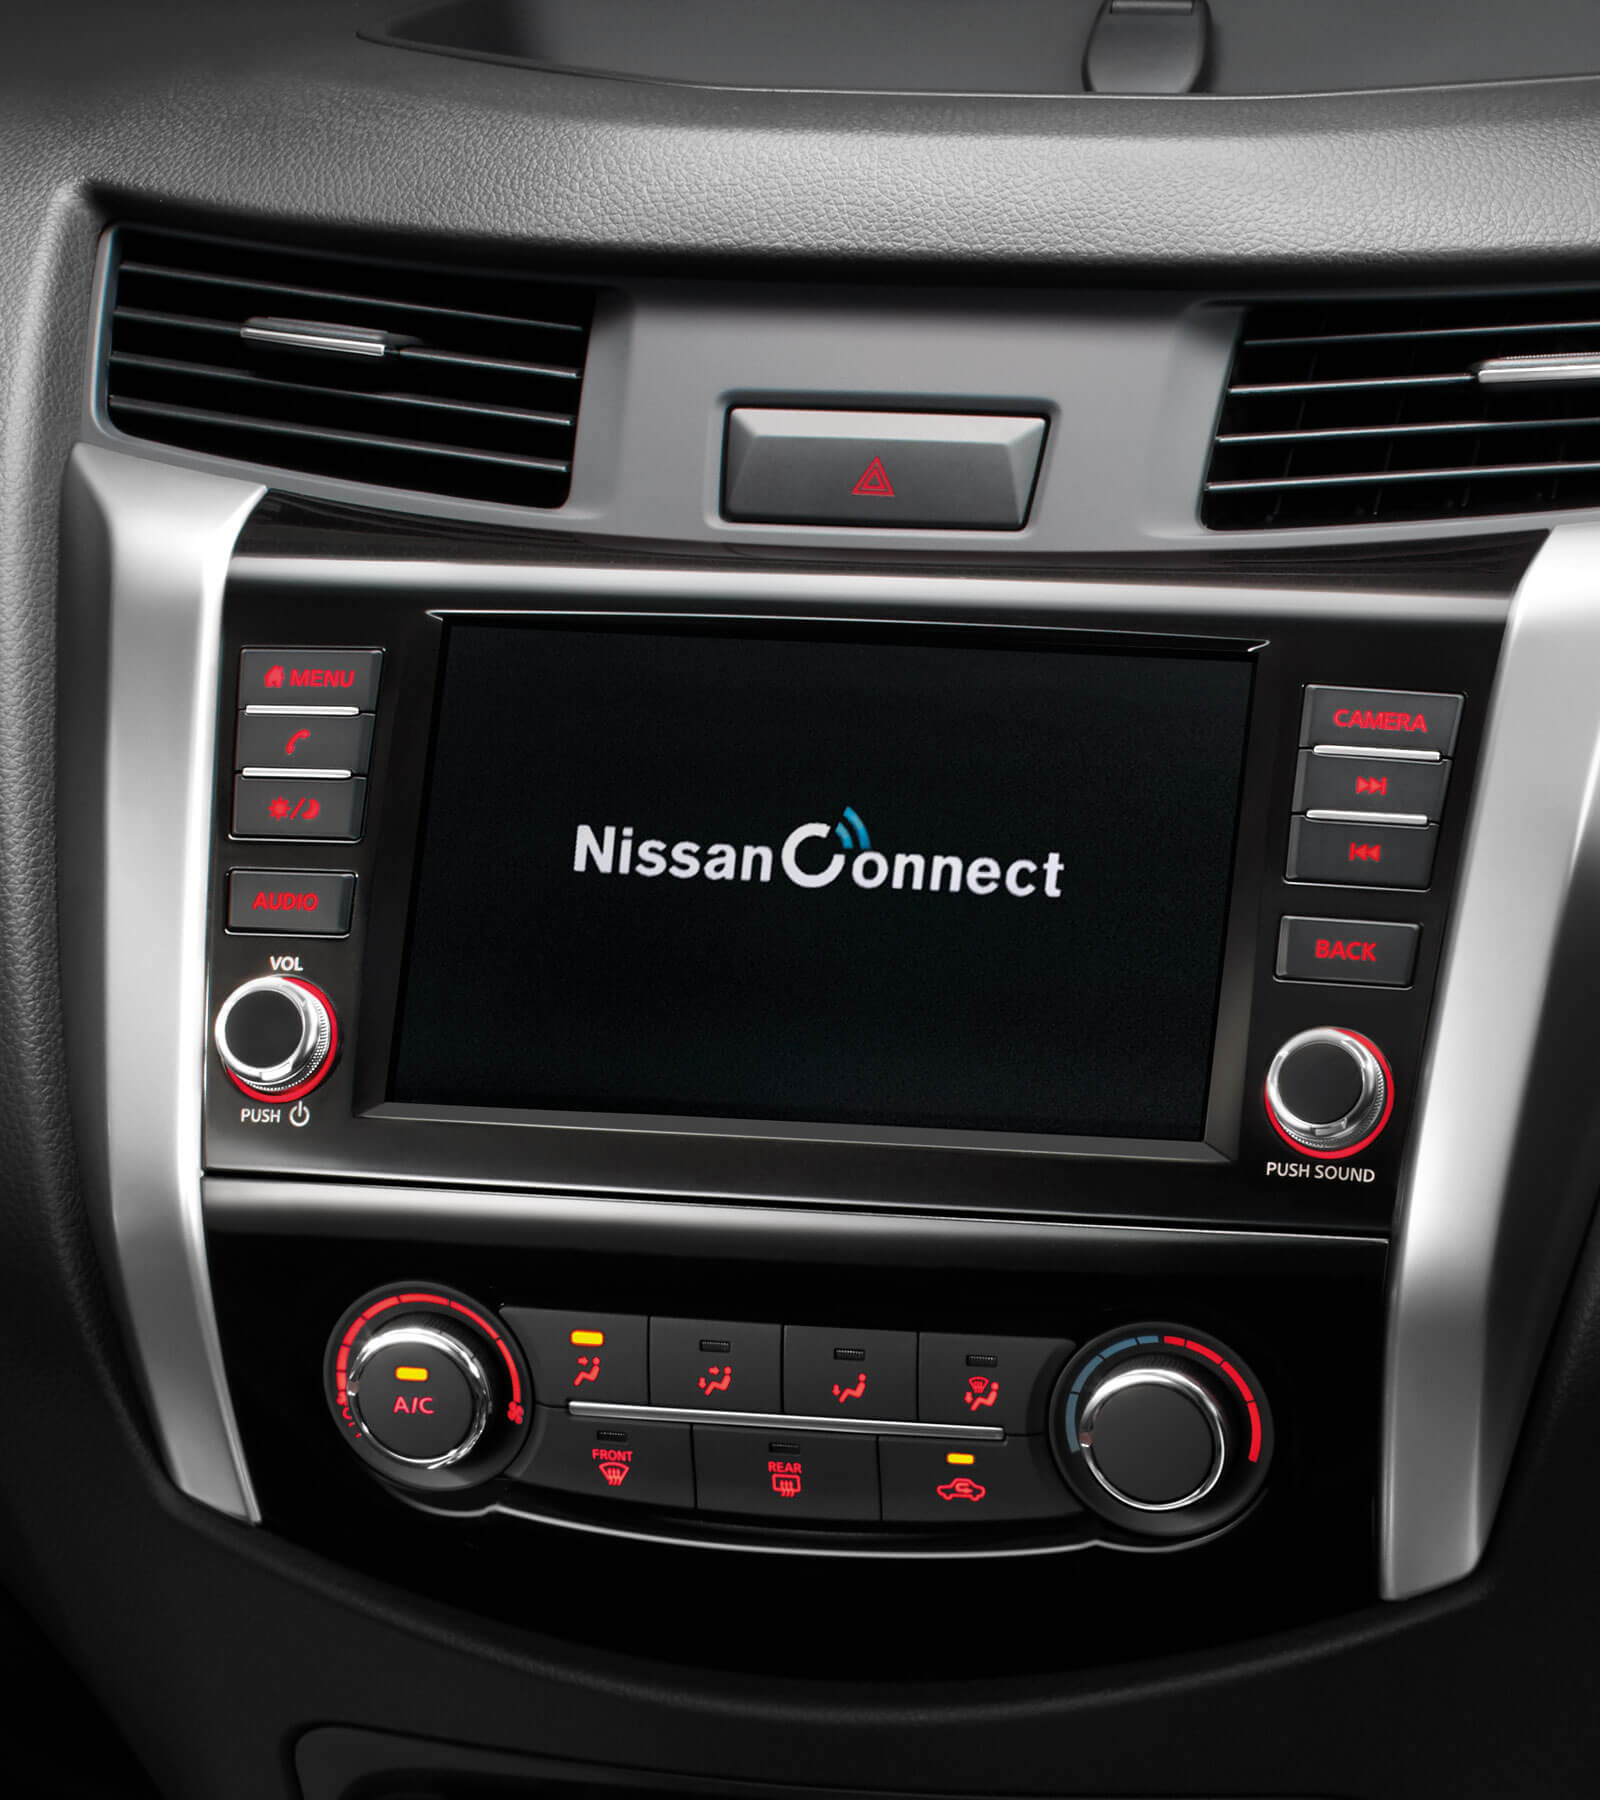 New 8 inch Radio Display with NISSAN CONNECT